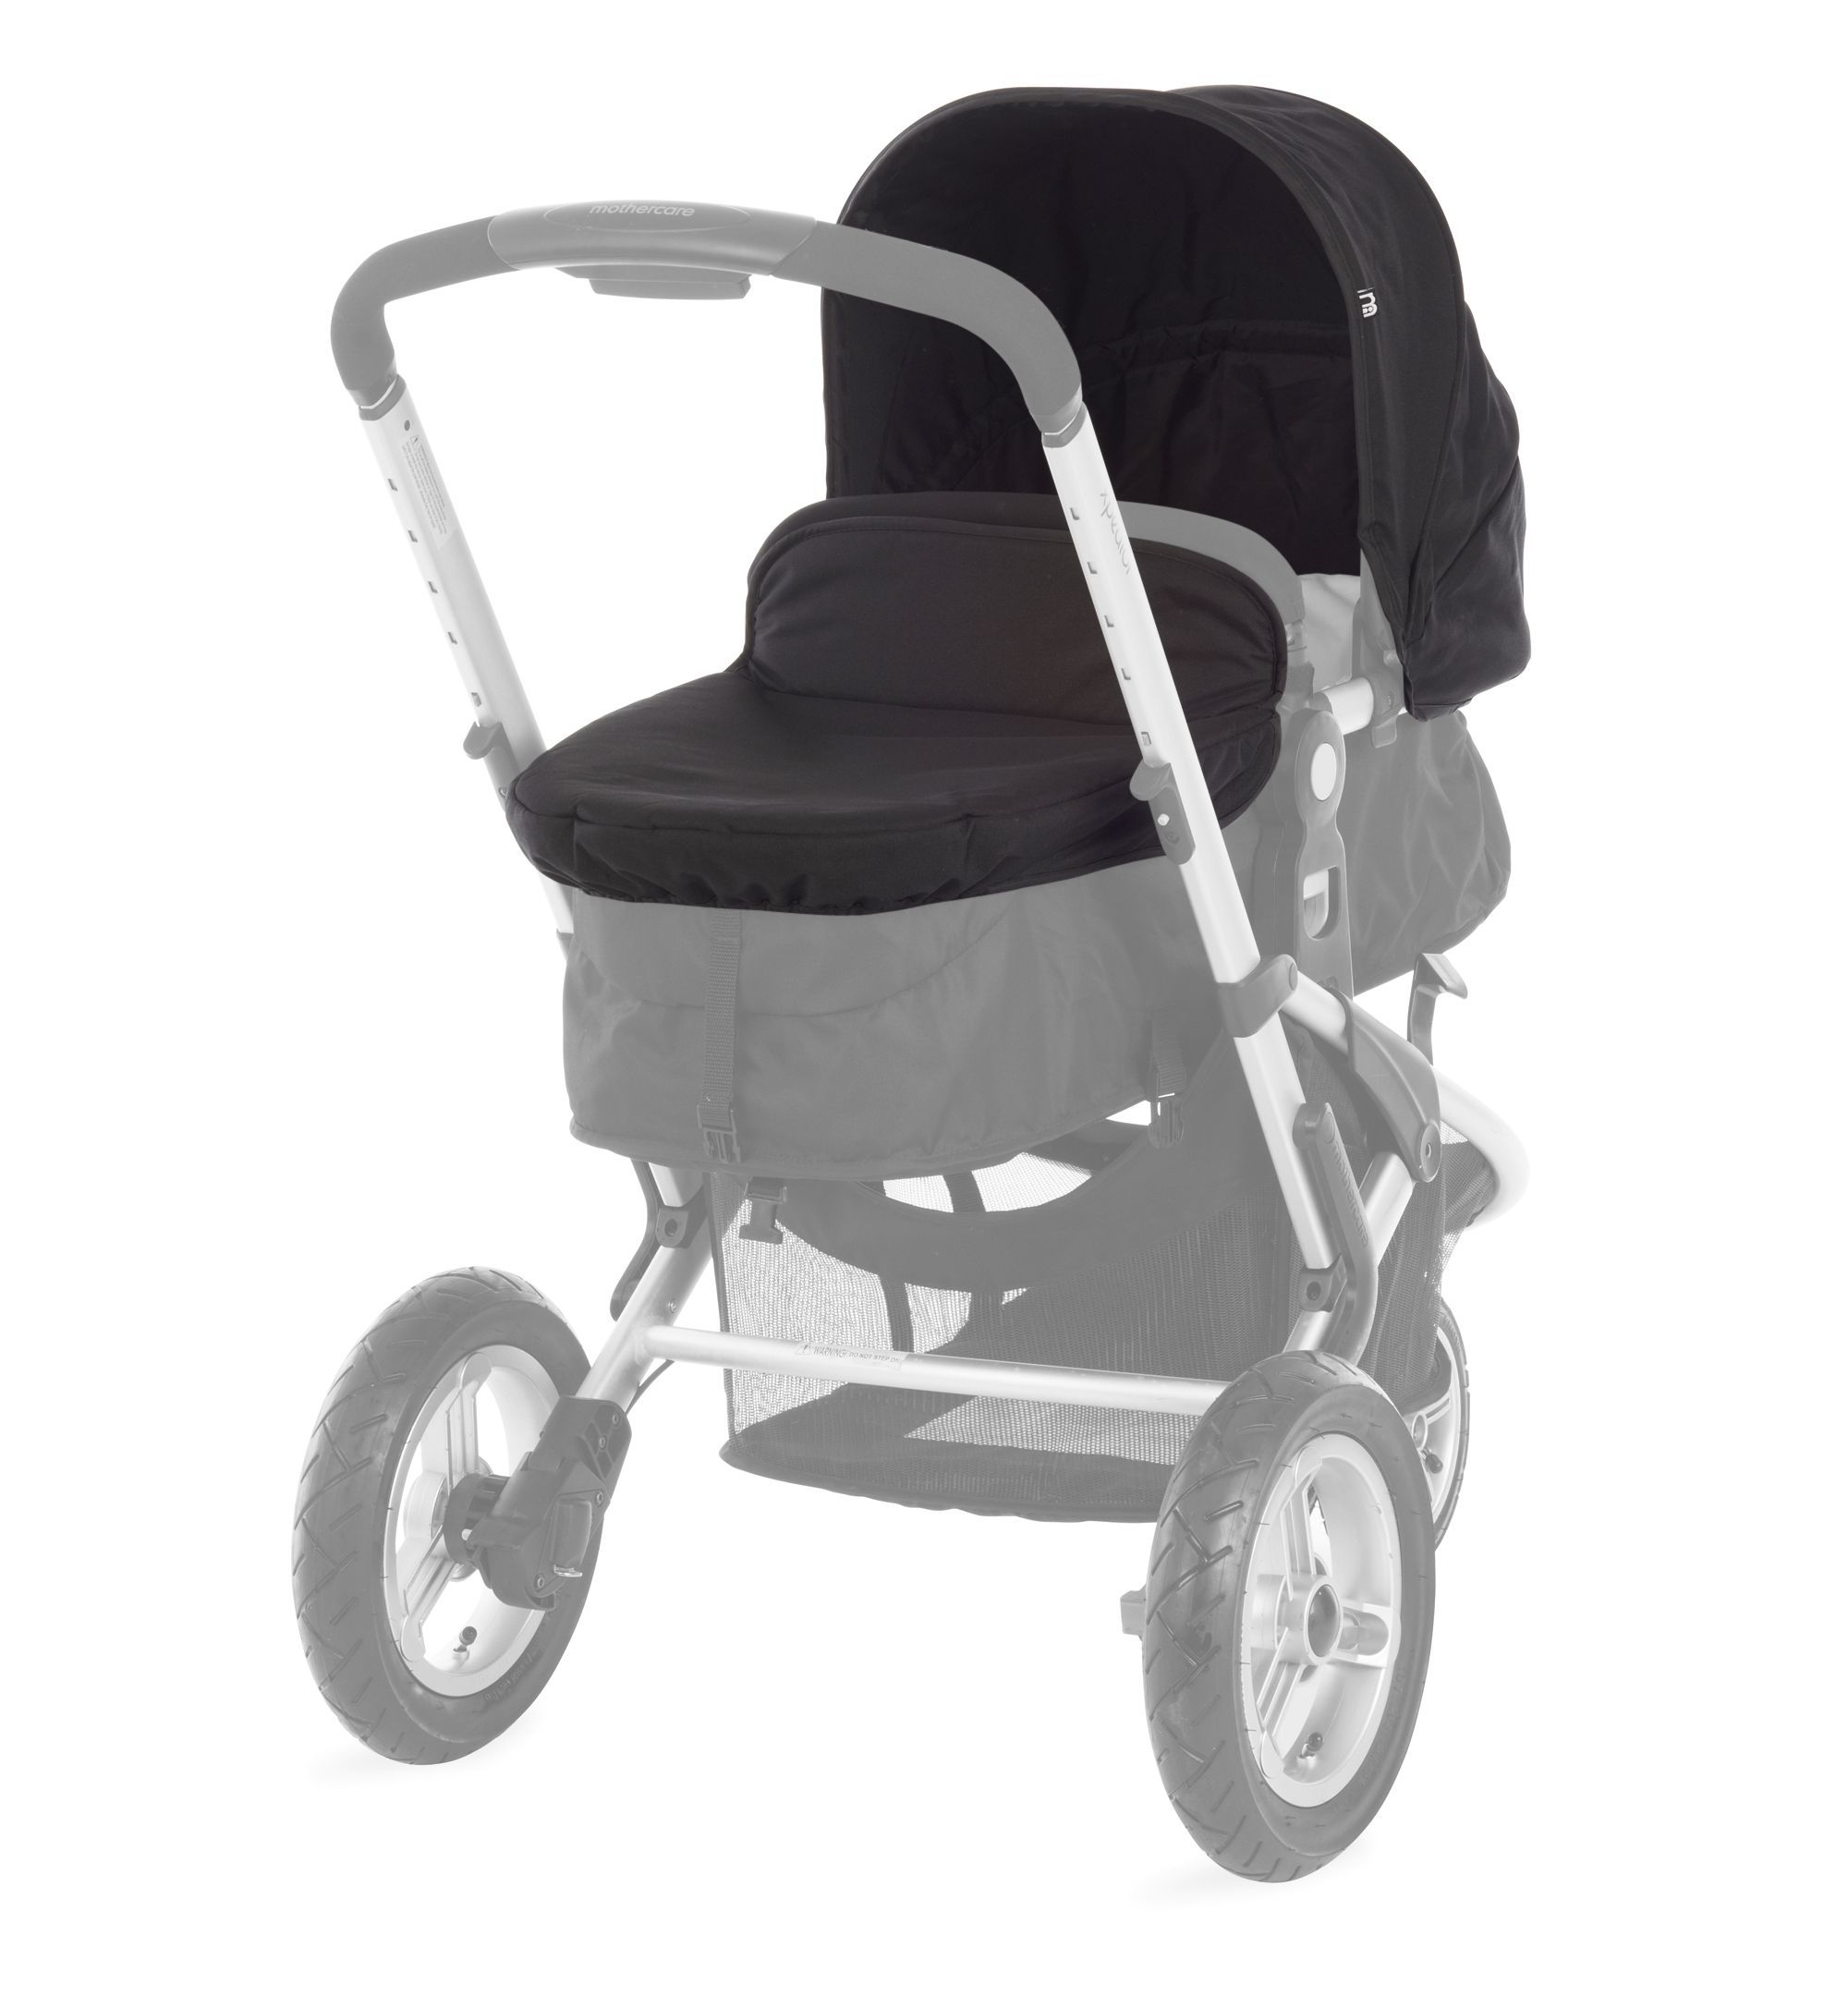 nursery bedding Prams, pushchairs, New baby products